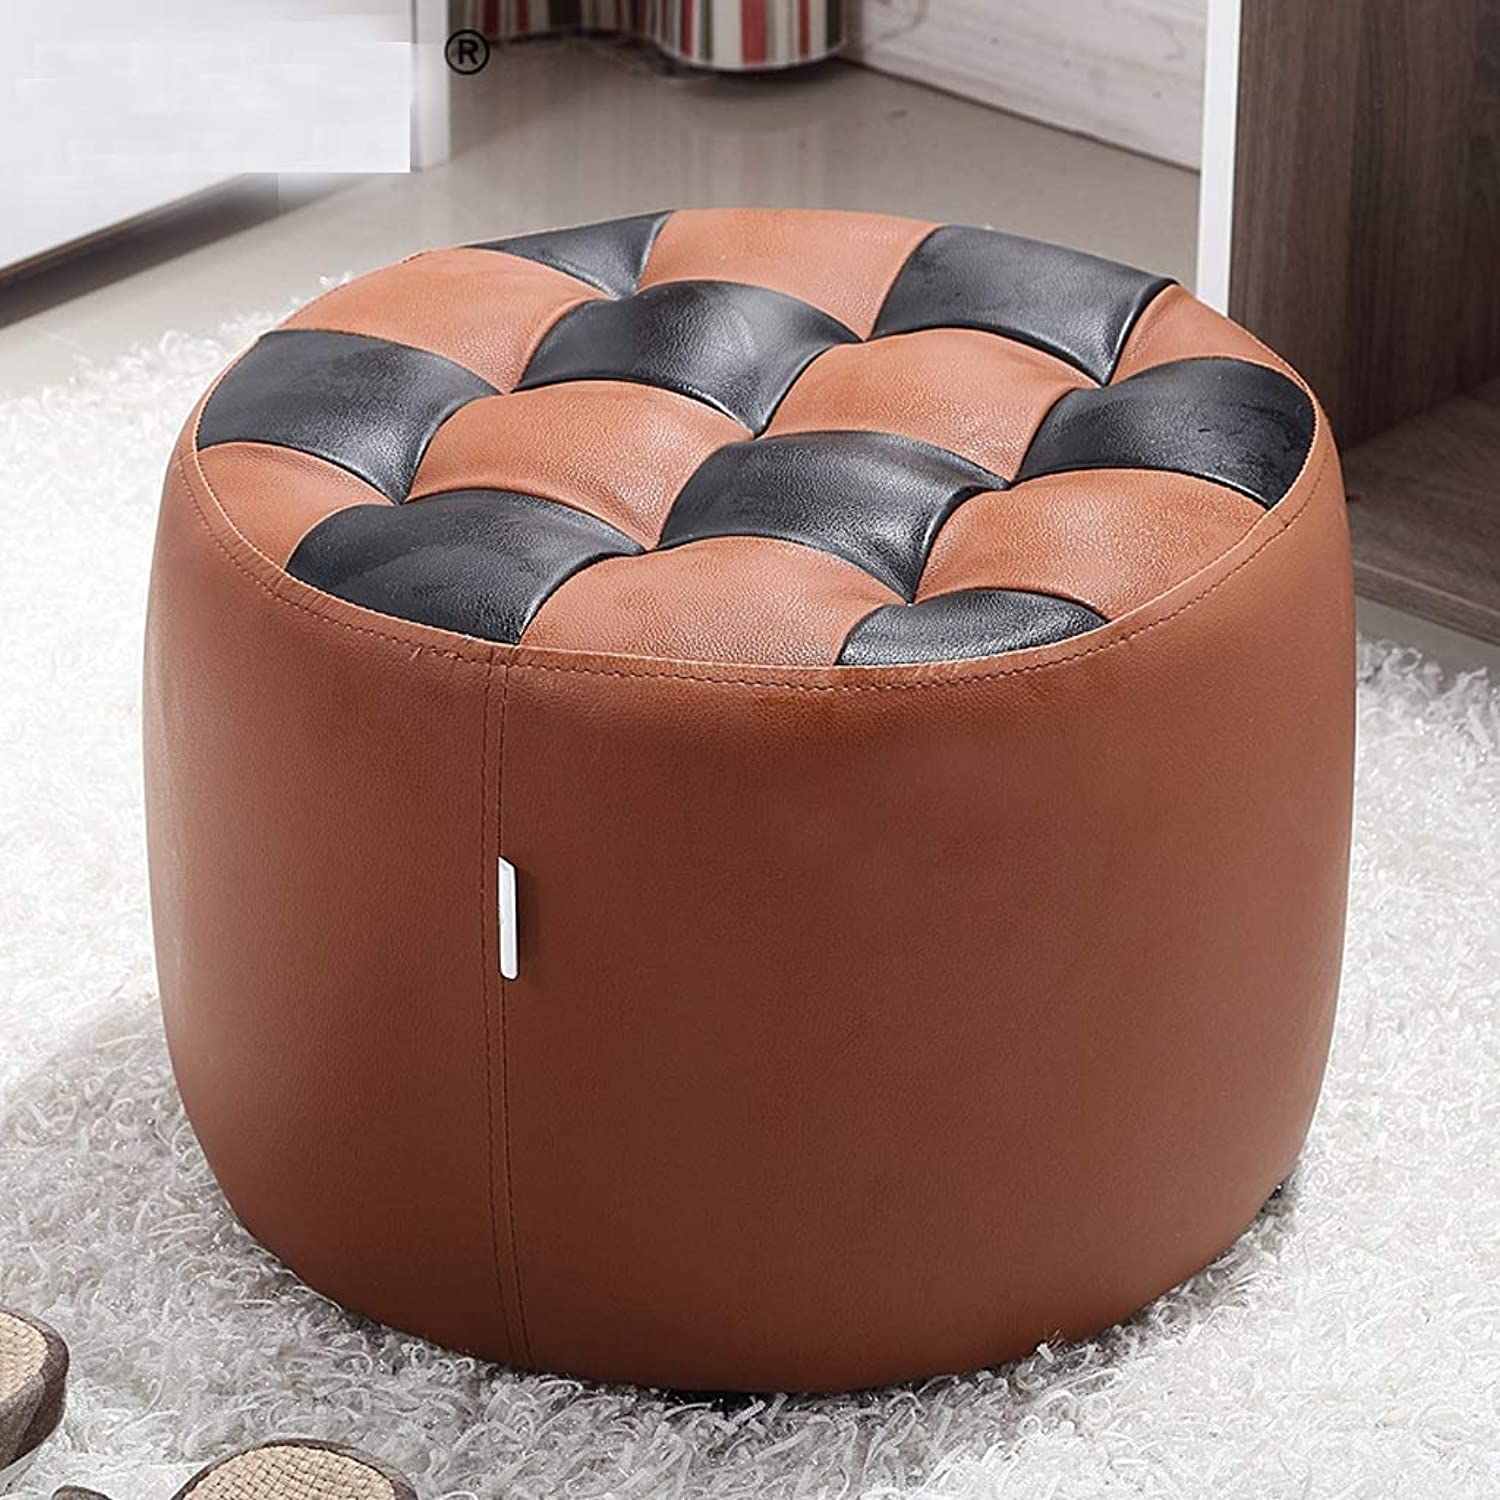 SYFO Household Solid Wood Stool, Fashion Sofa Stool, Simple shoes Bench, Bedroom Makeup Stool Stool (color   Brown)